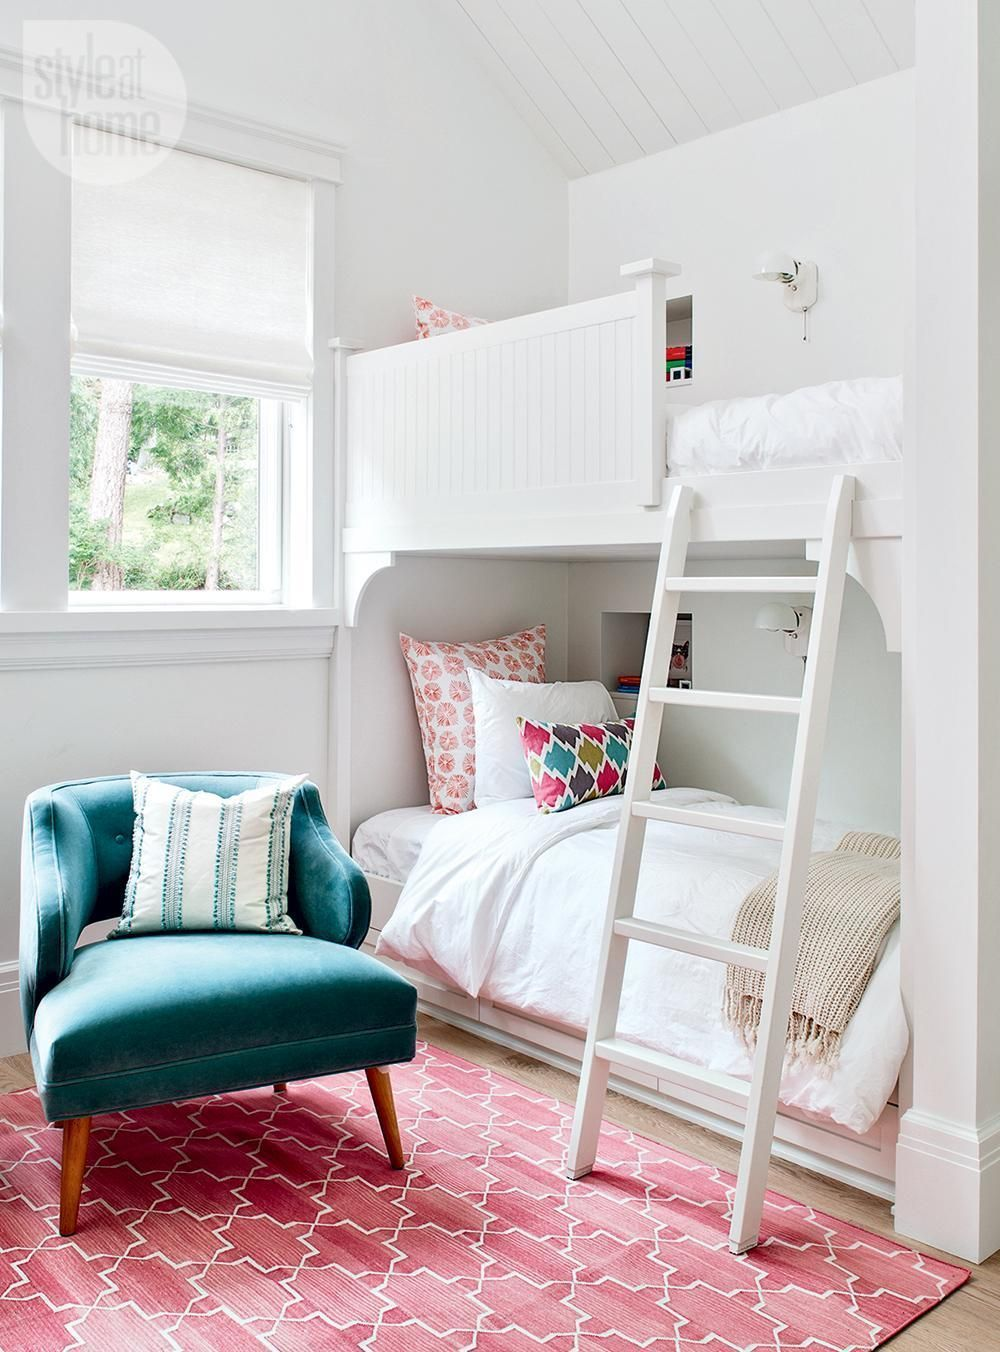 Cute loft bed ideas  Exchange ideas and find inspiration on interior decor and design